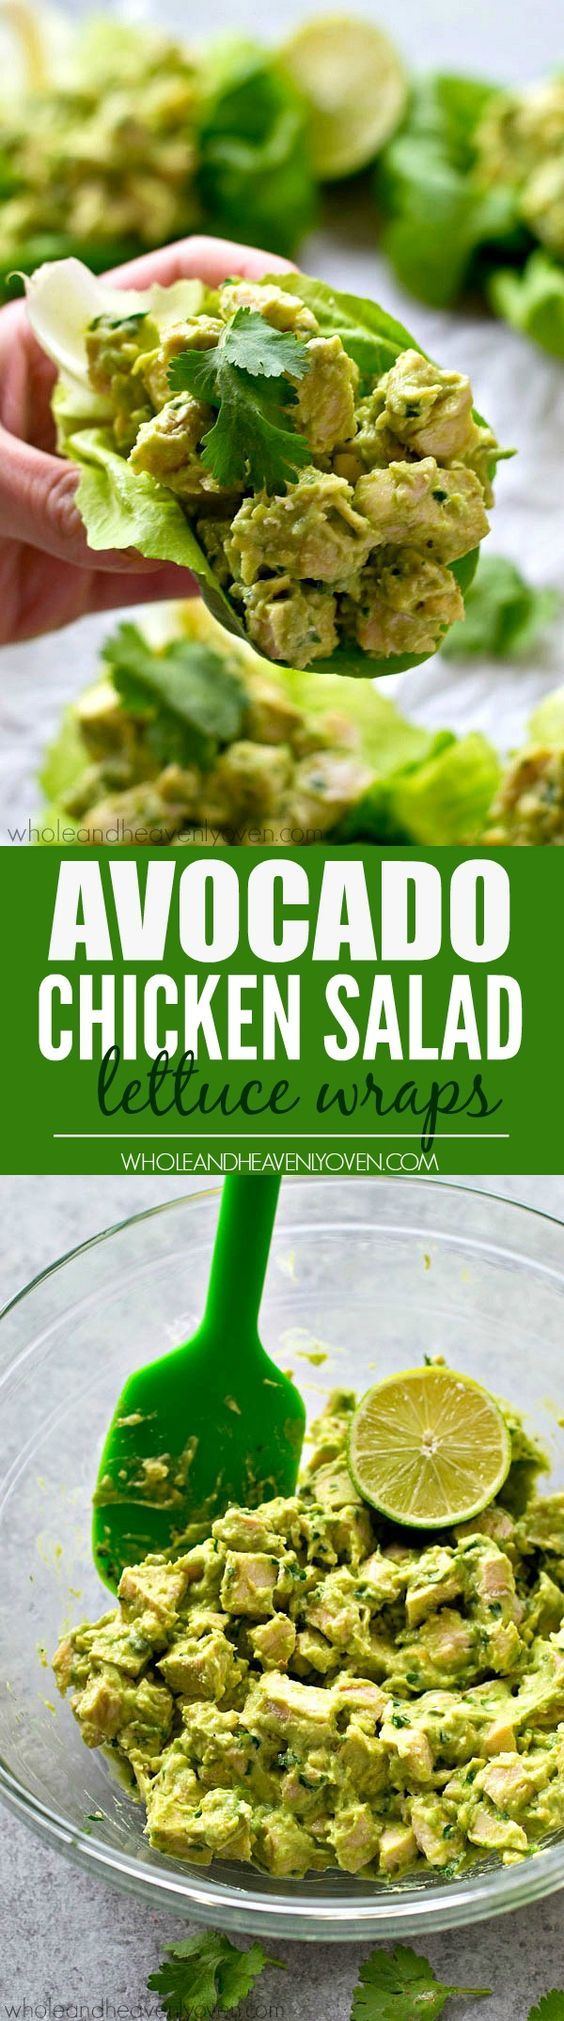 avacado chicken salad